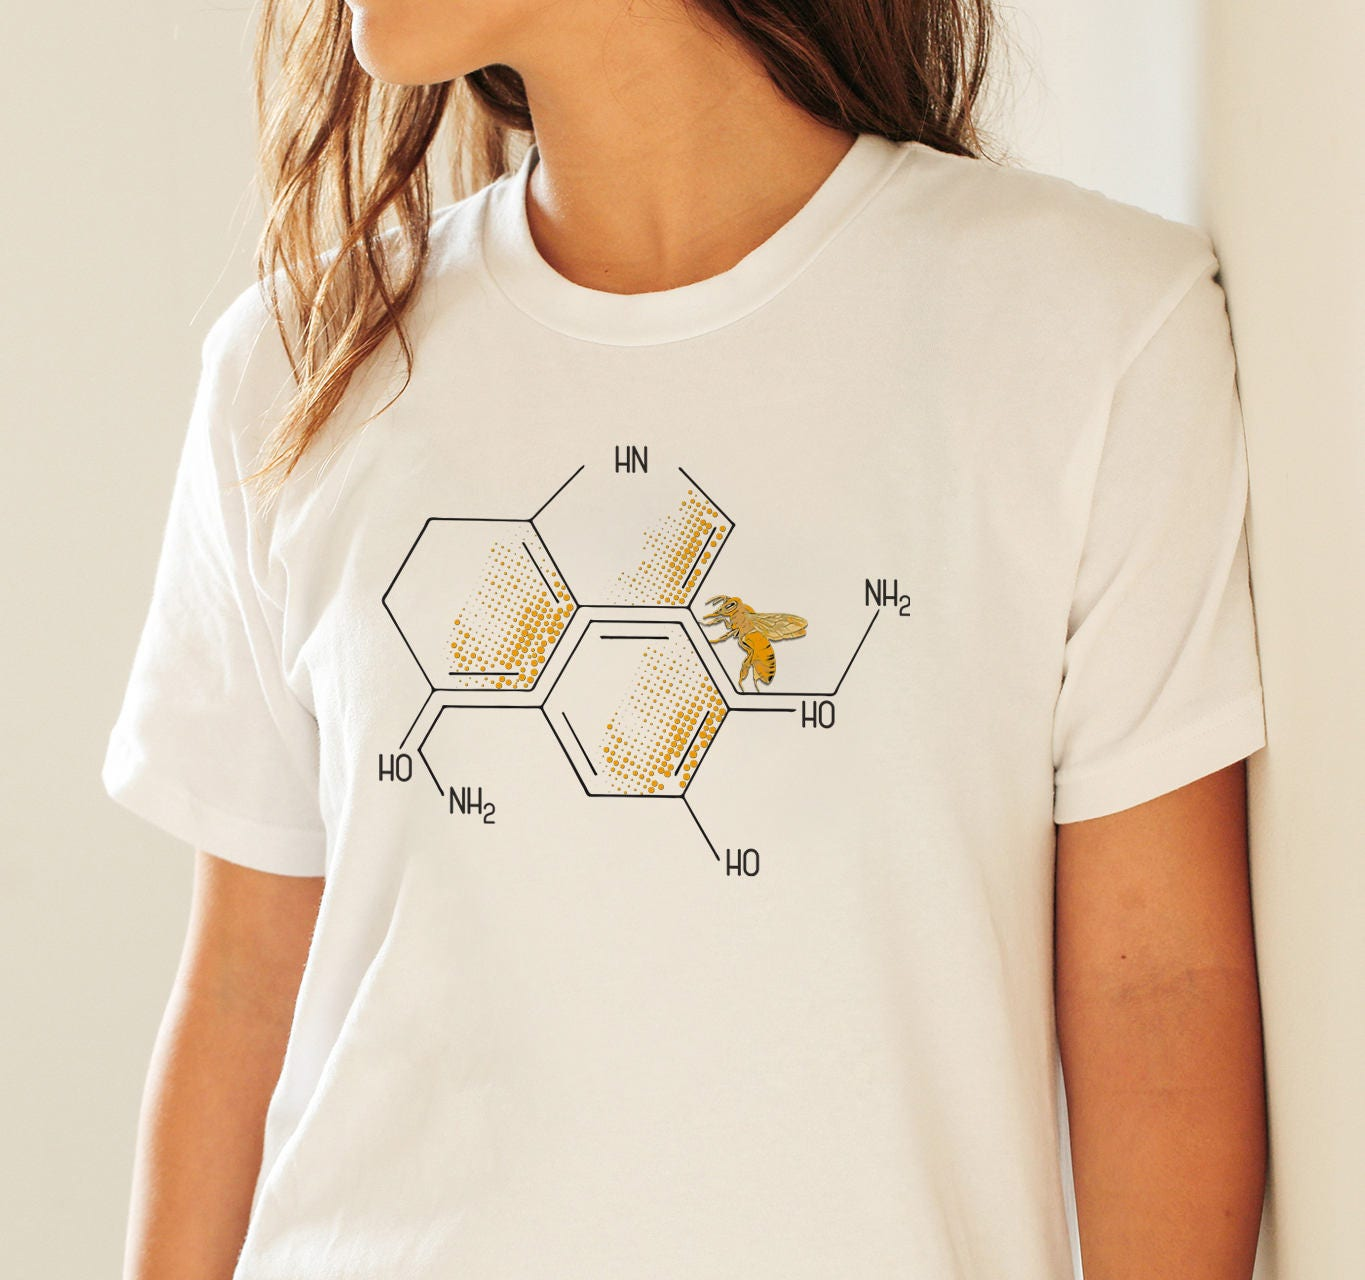 ae8ac0527 Nectar of life | Serotonin and dopamine chemical formulas | Unisex T ...